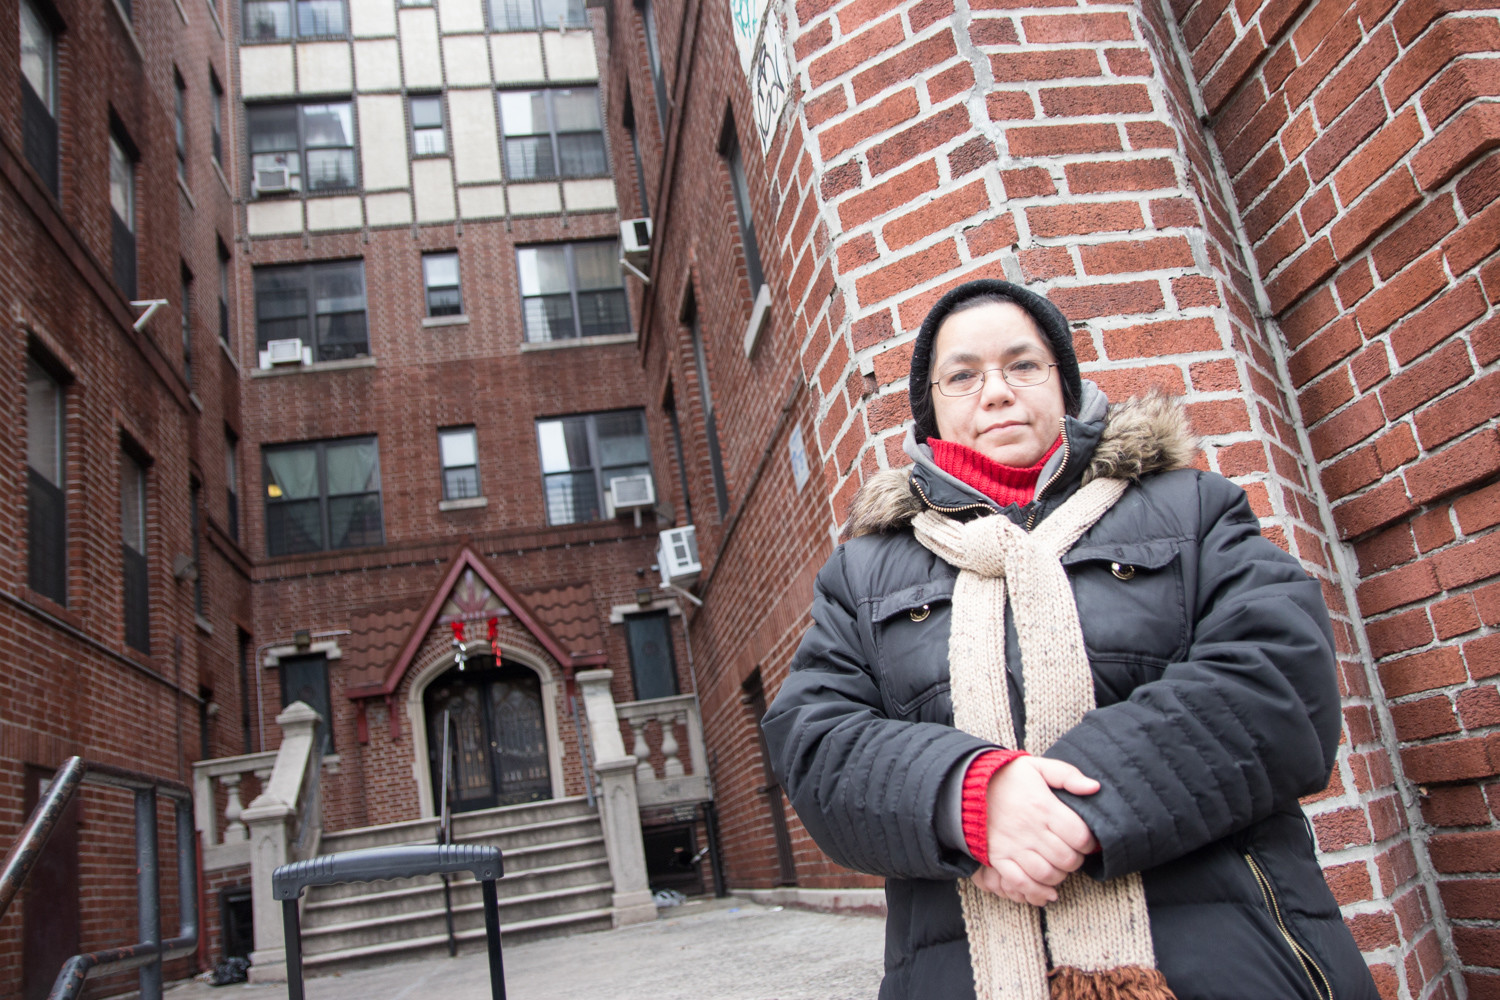 Marisol Jimenez, a former resident of Bedford Park, was threatened with eviction after a new developer sought to construct a multi-story apartment building on top of her two-story home in Bedford Park. Now living in Kingsbridge Heights, Jimenez supports Community Board 8's efforts to downzone her home and prevent a repeat of what happened in Bedford Park.